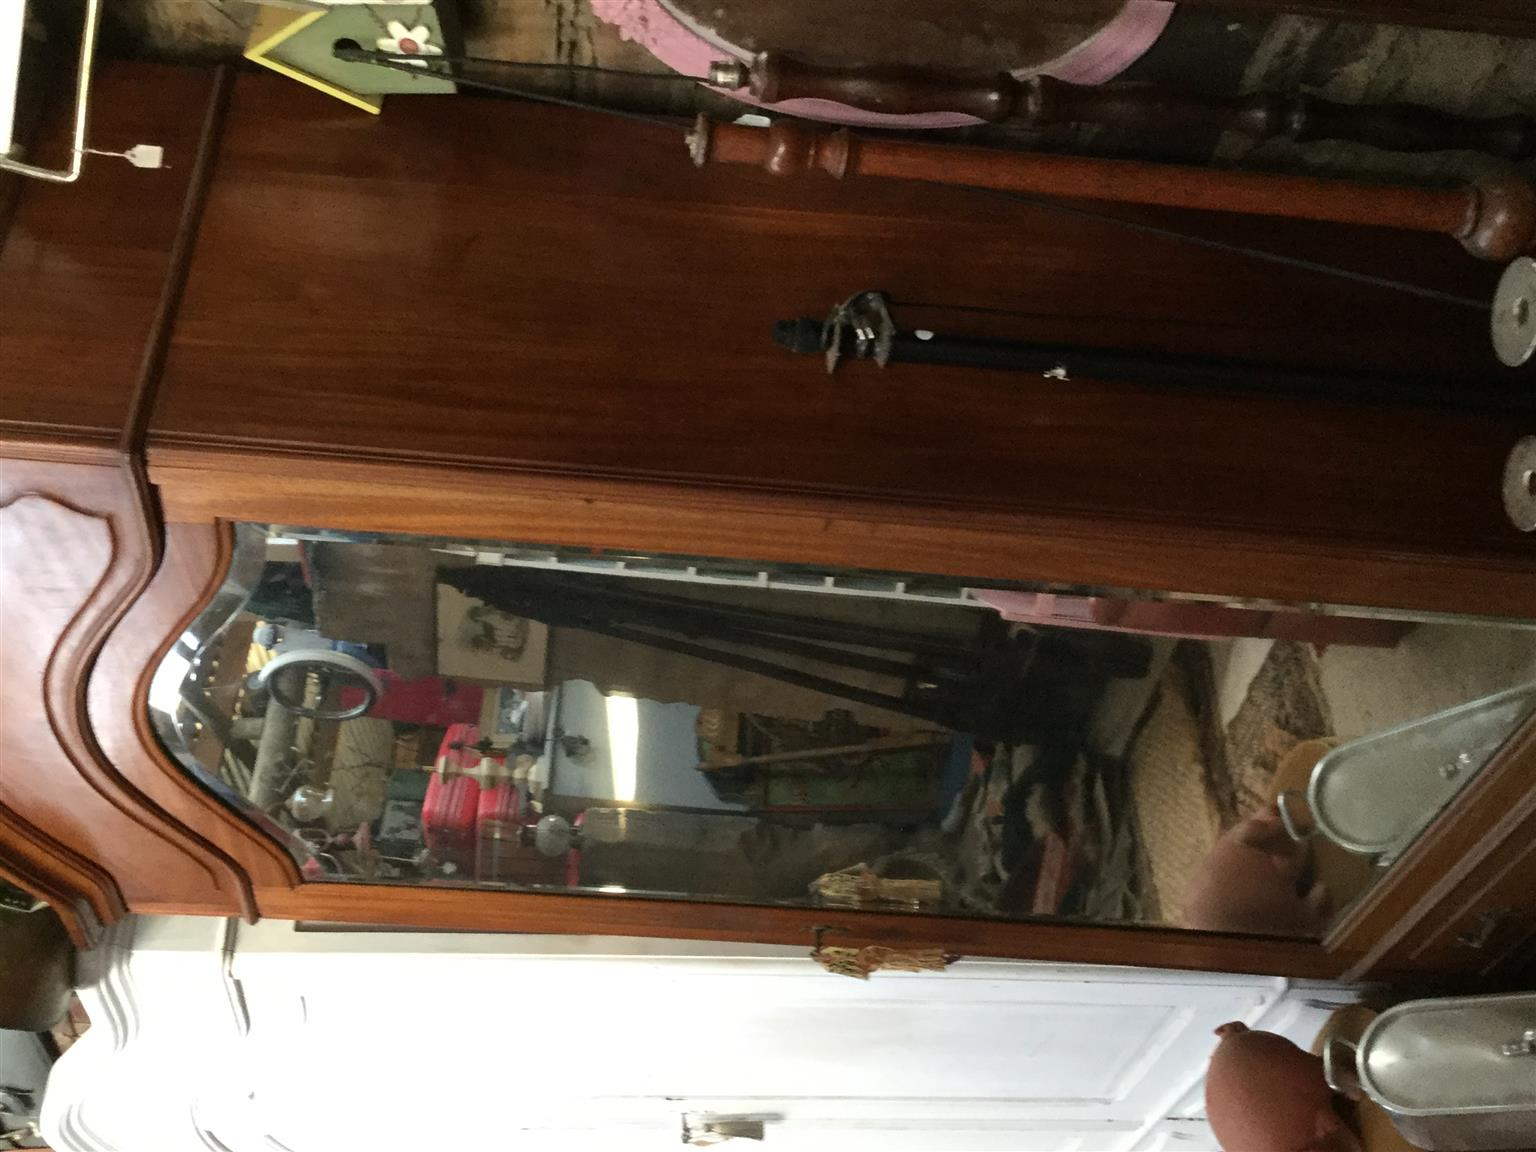 Awesome armoire, solid wood interior shelves, idea Storeage linen or drinks